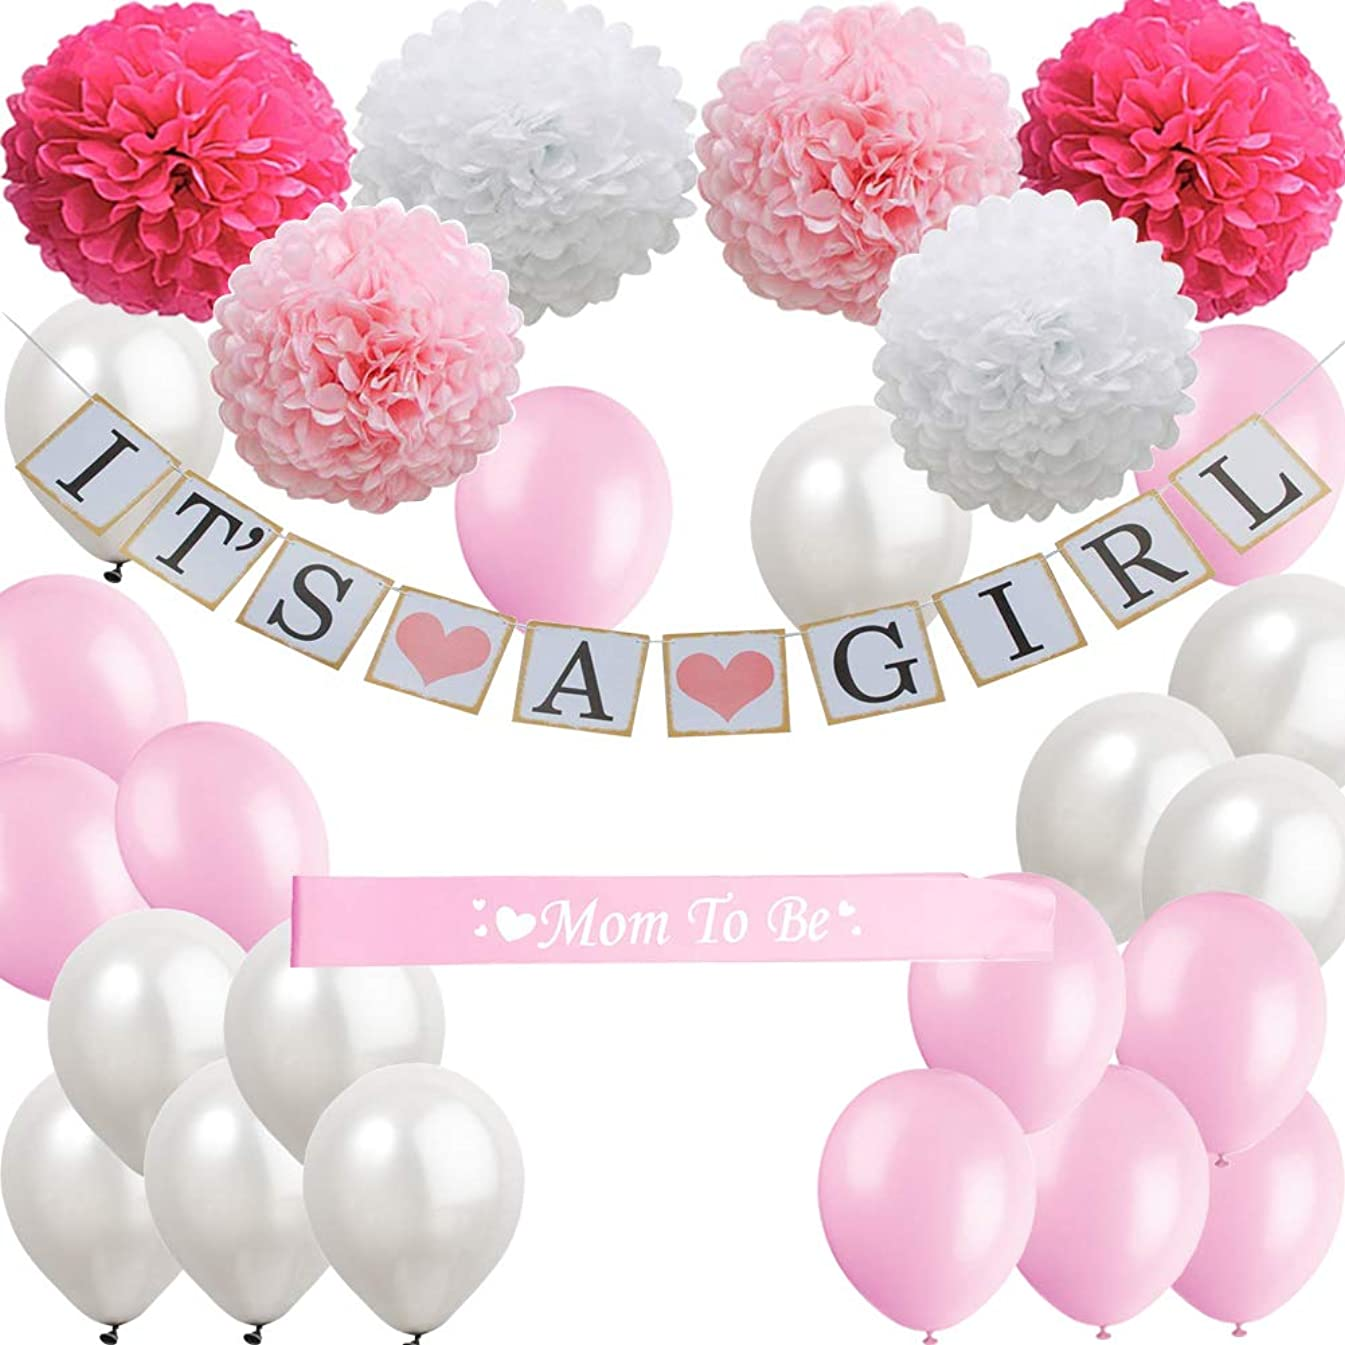 Baby Shower Decorations for Girl Set, It's a Girl Banner, White Pink Rose Red Paper Flower Pom Poms, White Pink Balloons, Mom to be Sash, Perfect for Indoor and Outdoor Baby Shower Favors, Gifts, Games, Party